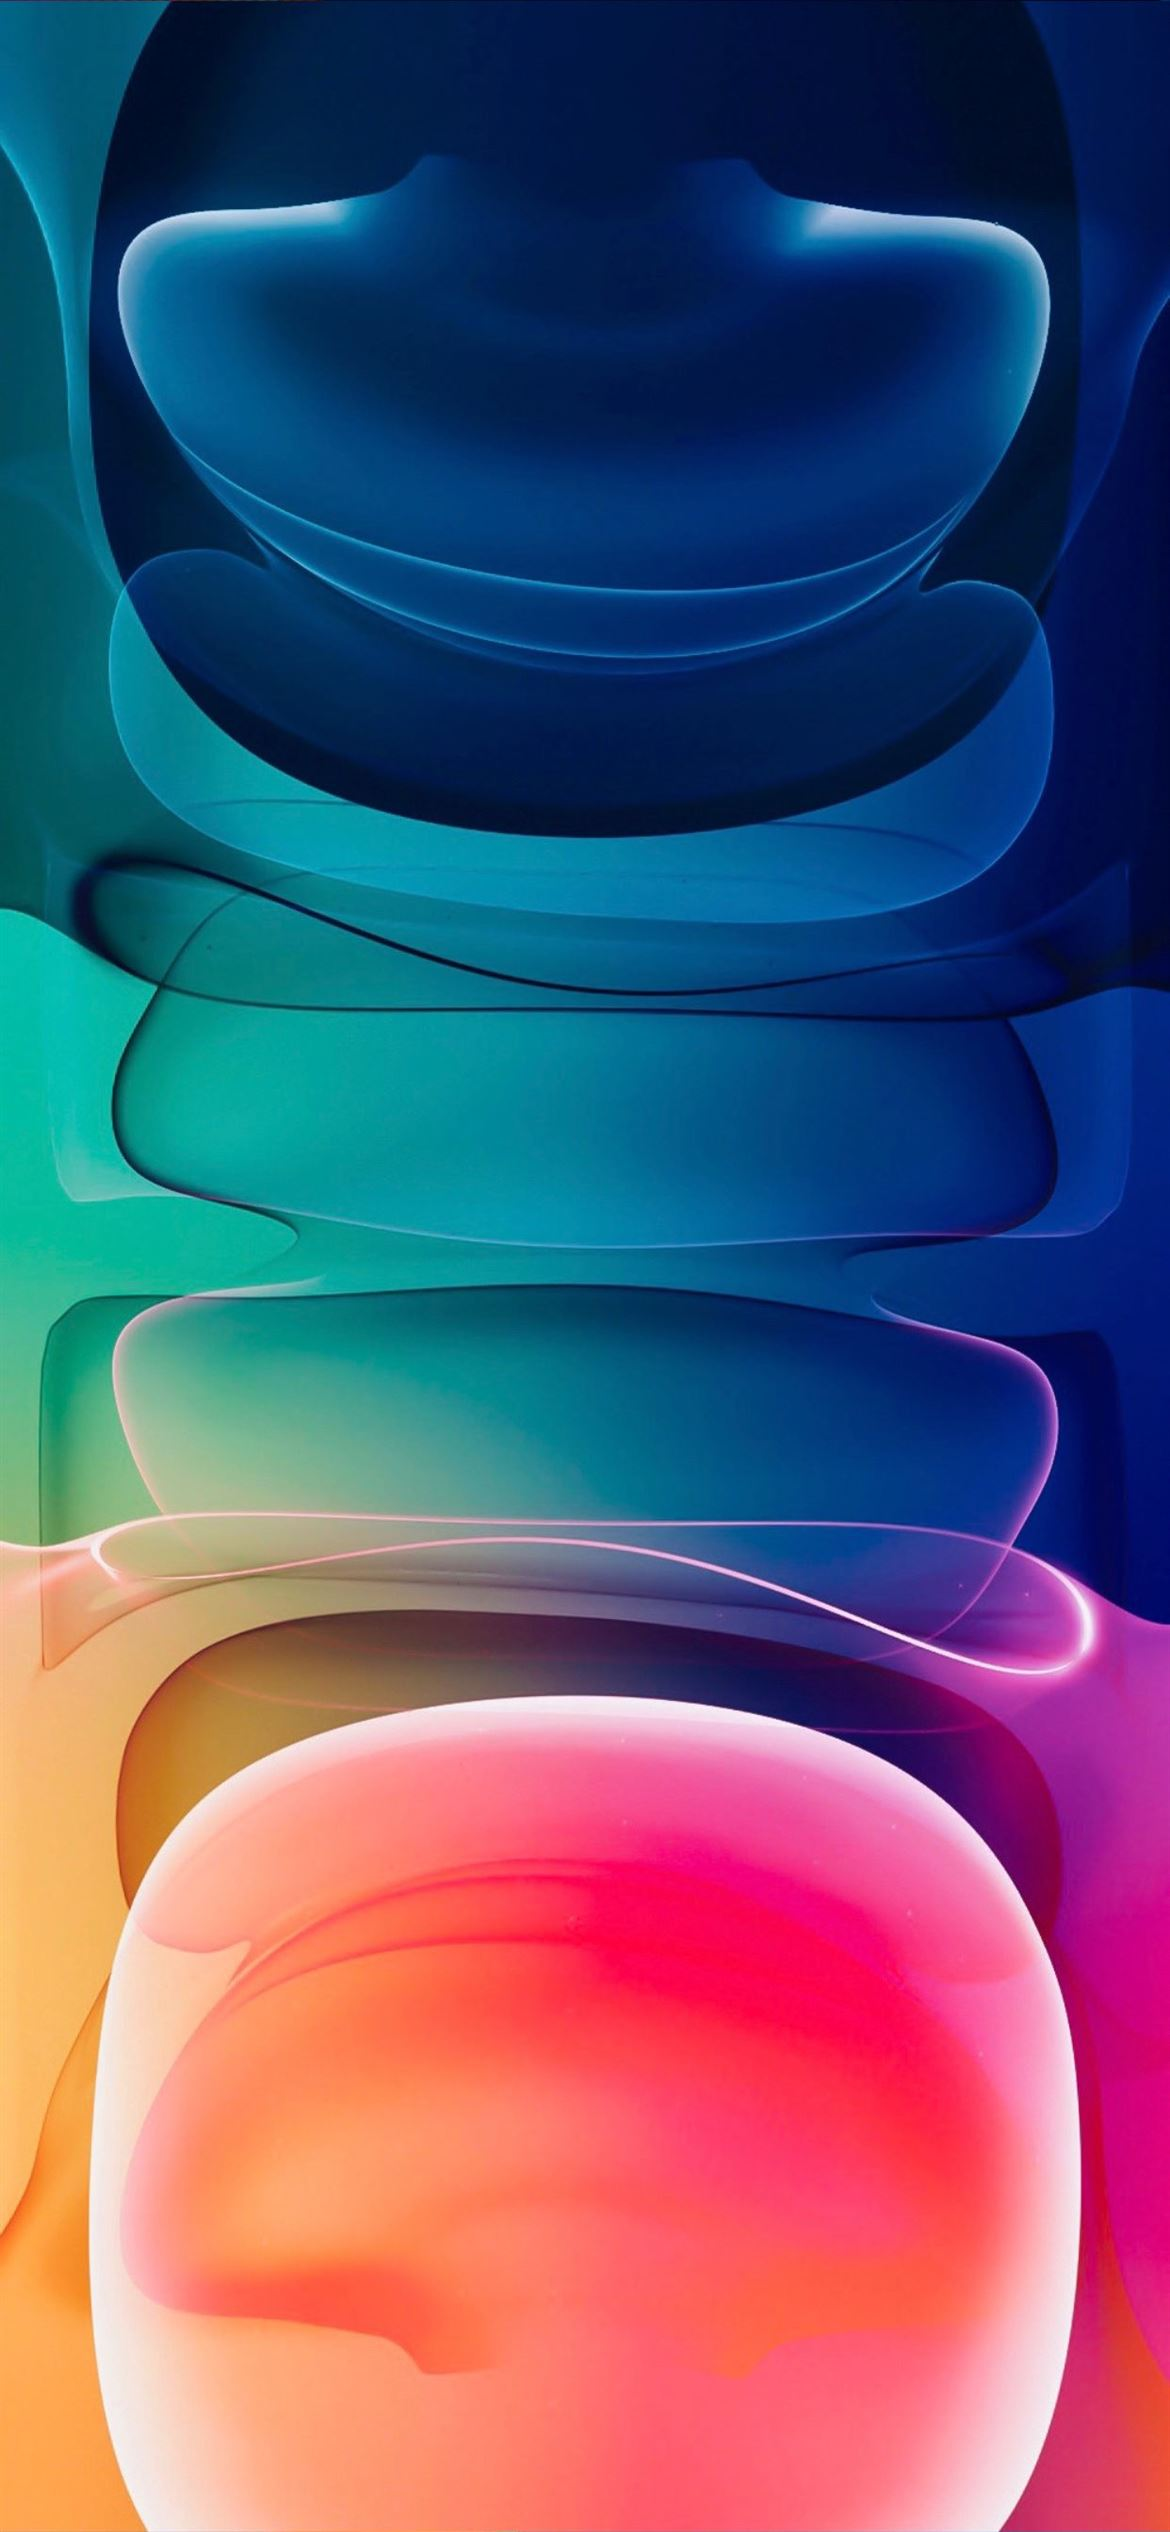 iPhone 12 and iPhone 12 Pro Wallpapers - iLikeWallpaper